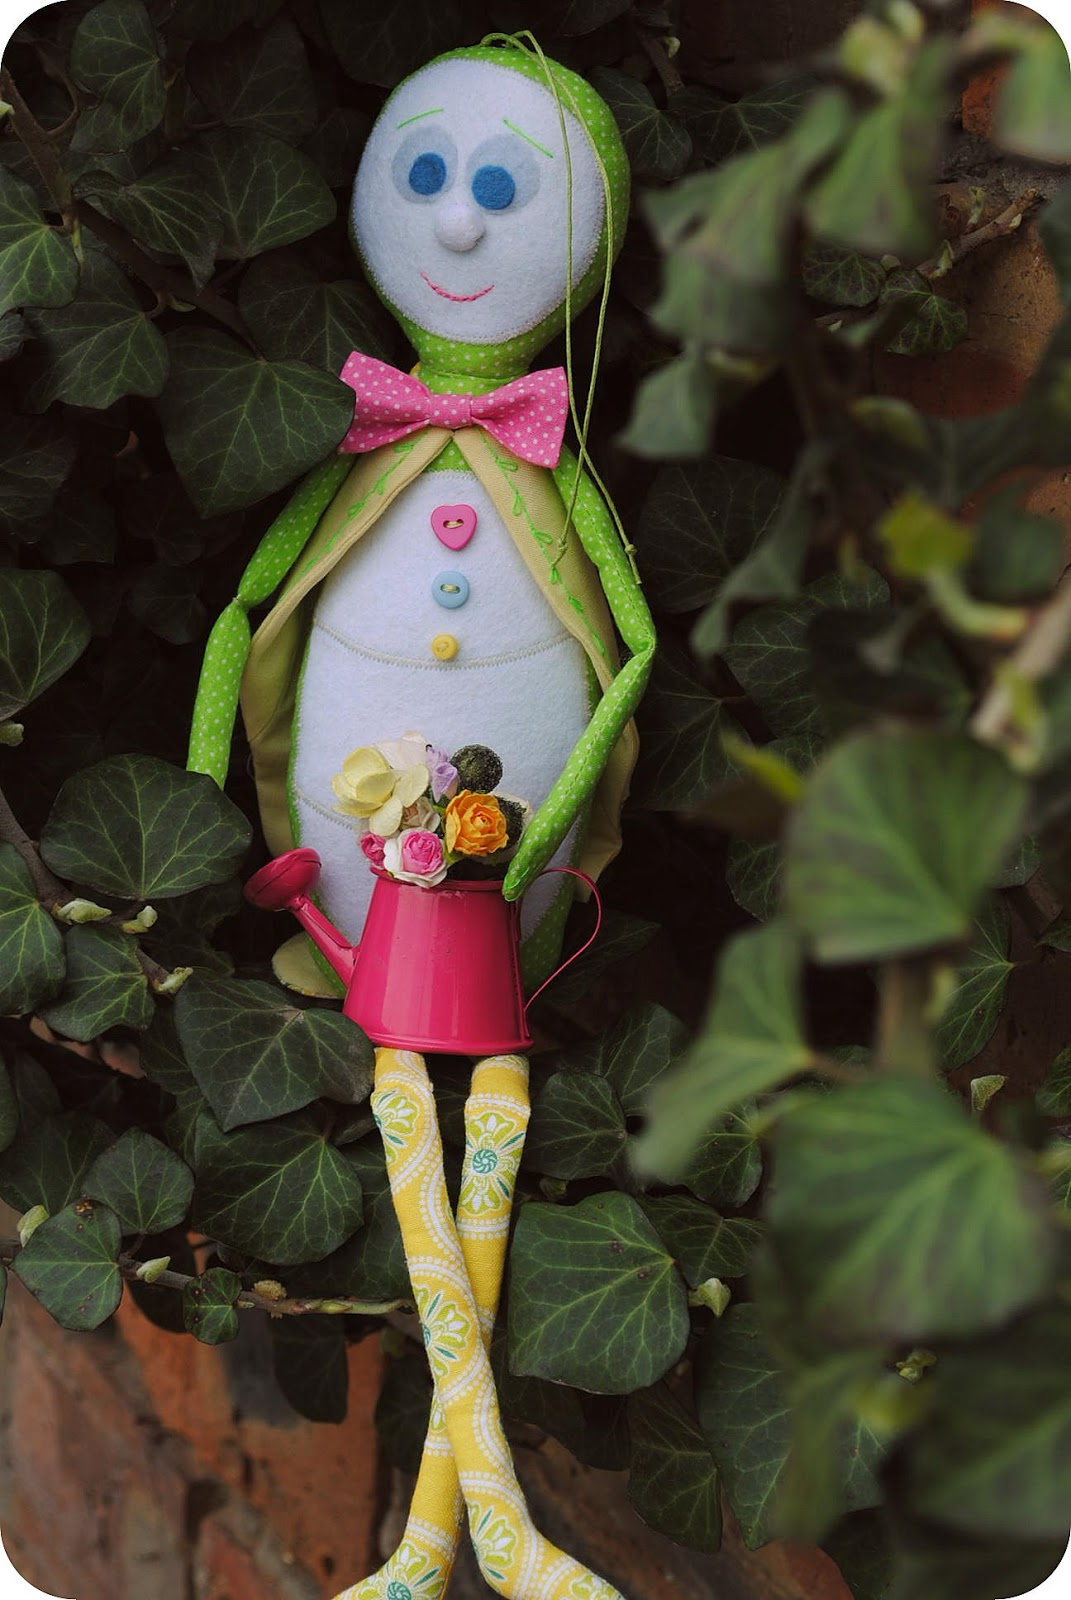 newborn, kids, baby, gift, sewing, green, yellow, girl, son, kids, buy, handmade, natural, fairy, fairies, beautiful, doll, cotton, house, ivy, grasshopper